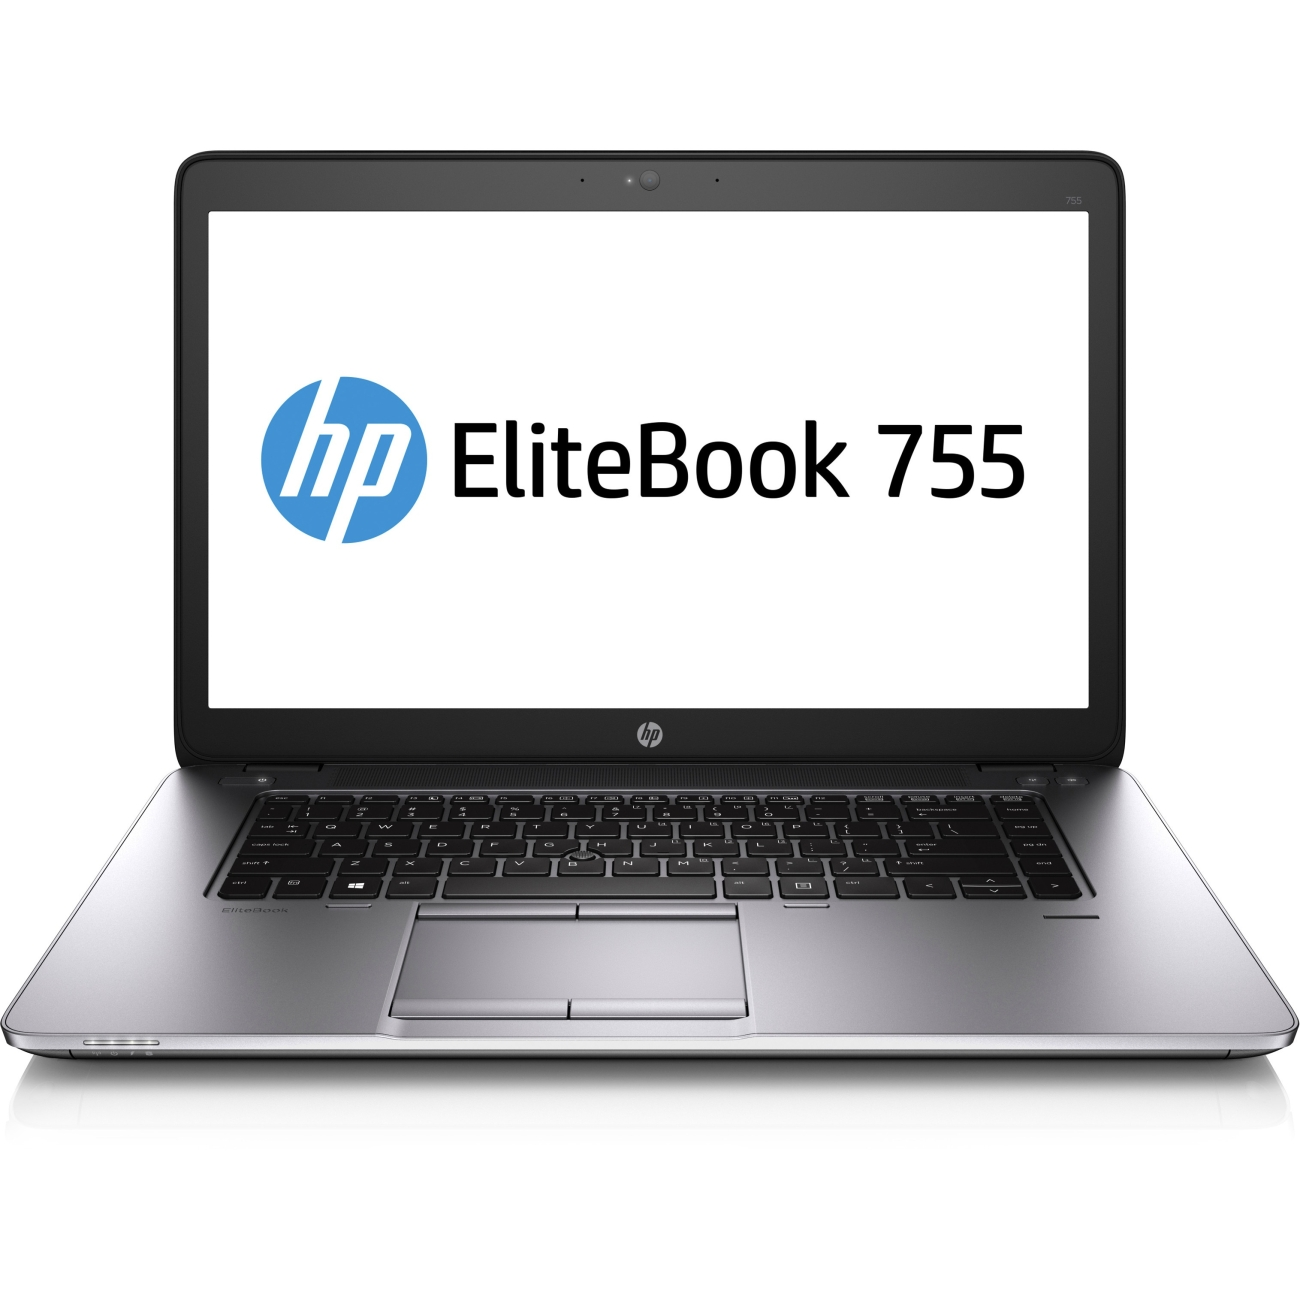 "Hp Elitebook 755 G2 15.6"" Notebook - Amd A-series A10 Pro-7350b Quad-core [4 Core] 2.10 Ghz - 4 Gb Ddr3l Sdram Ram - 500 Gb Hdd - Amd Radeon R6 Graphics Ddr3l Sdram - Windows 7 (p0c17ut-aba)"